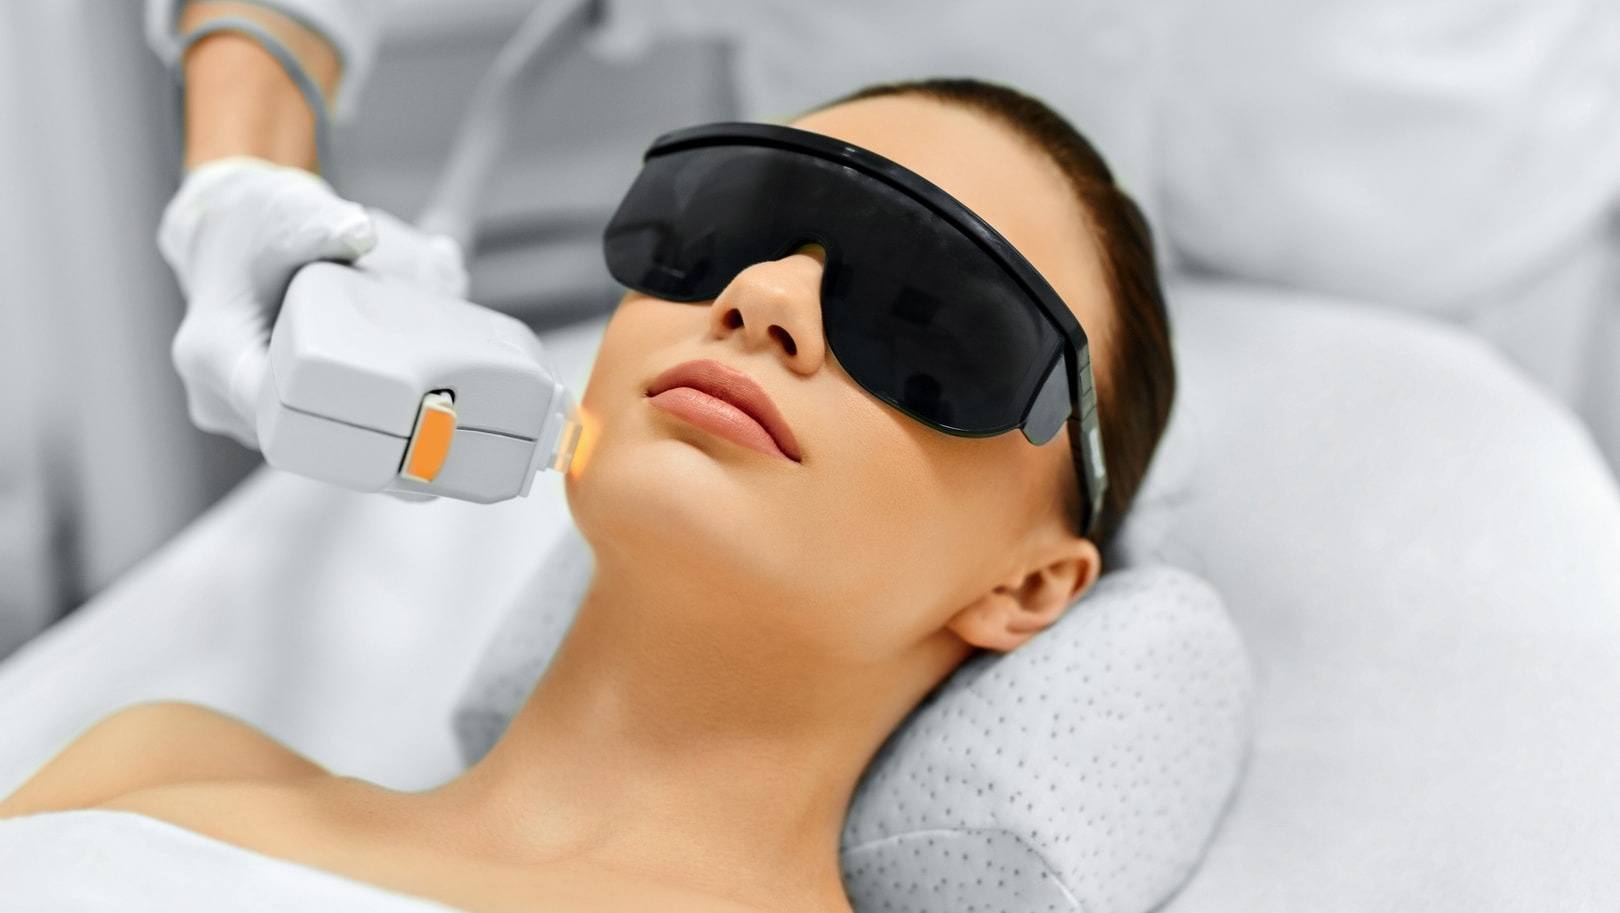 IPL Laser Treatments for Rosacea